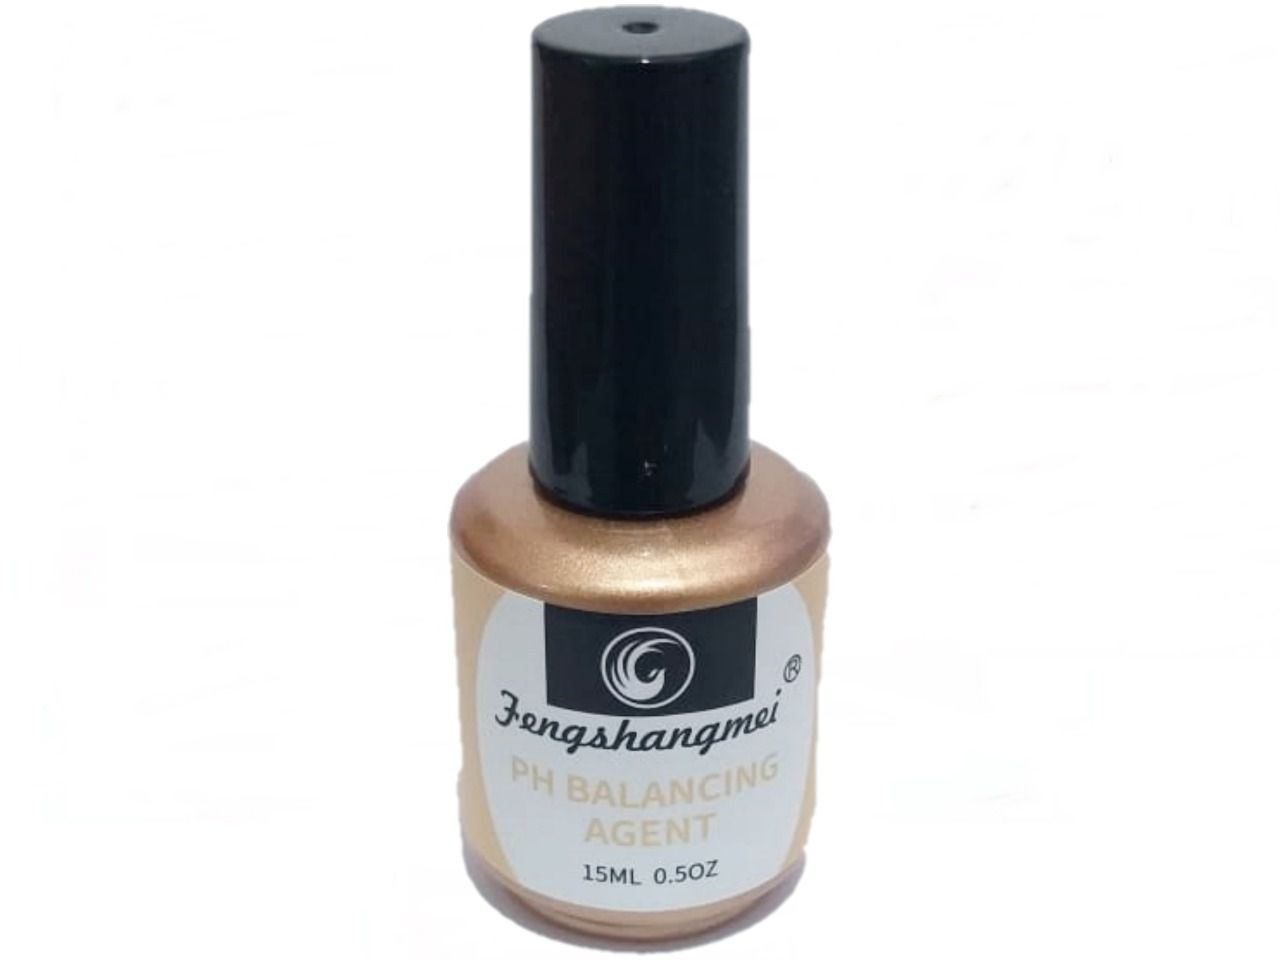 Ph Balancing Agent Fengshangmei Dourado Unhas Gel Tips 15ml